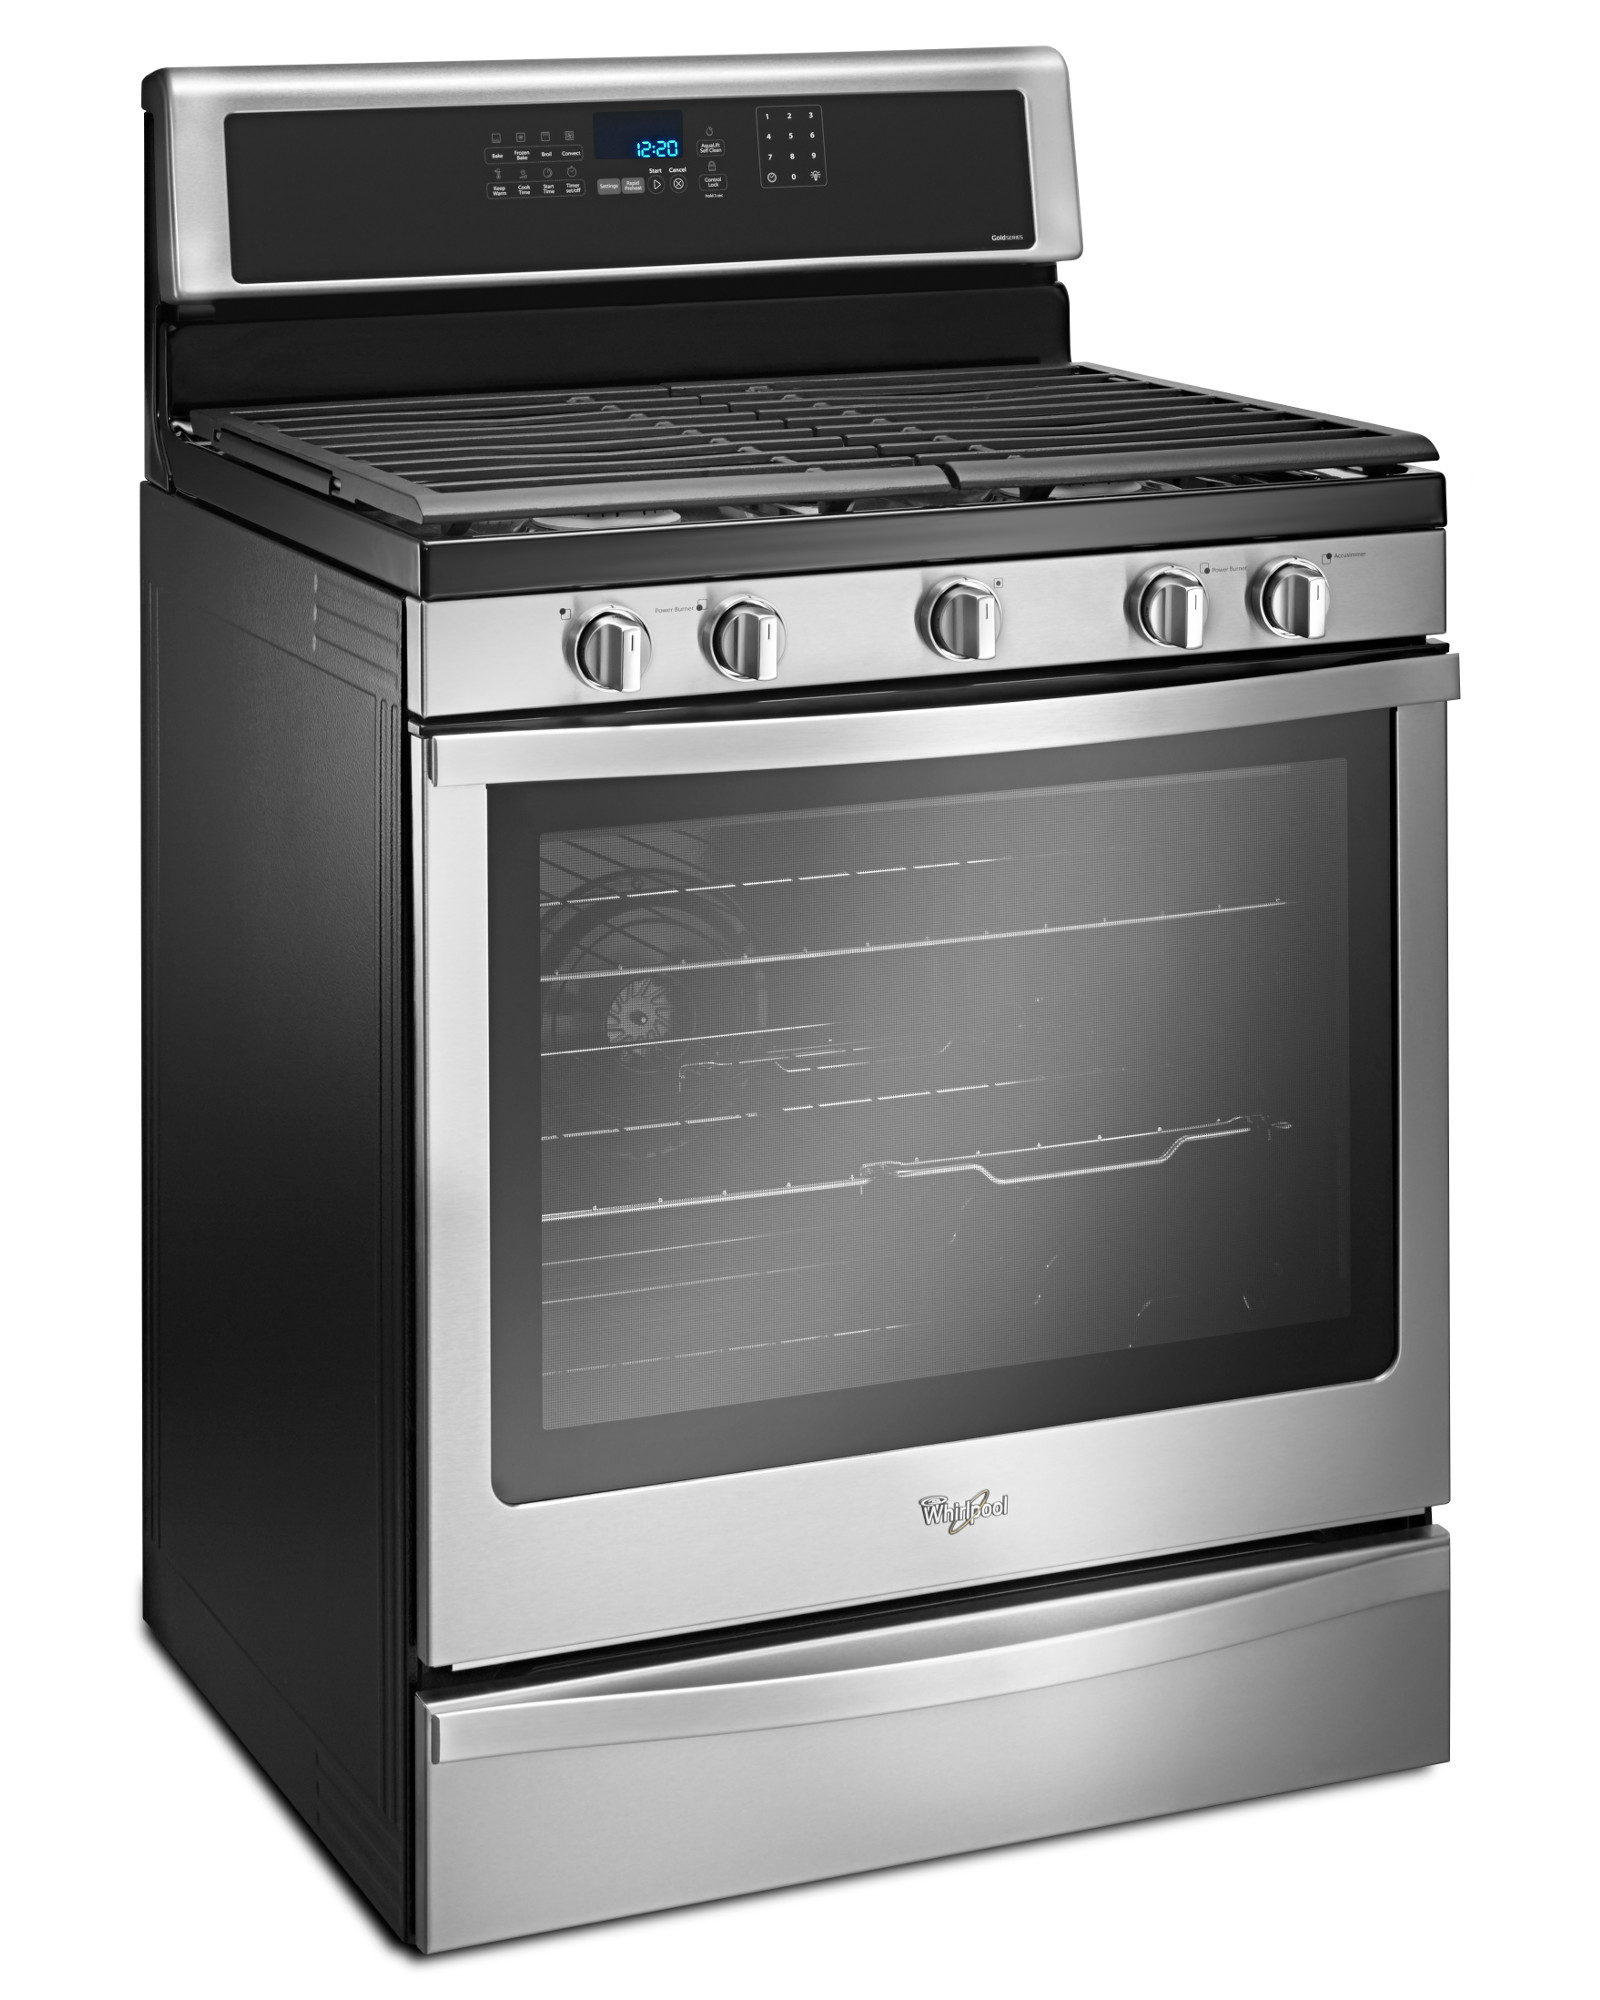 Whirlpool WFG745H0FS 5.8 cu. ft. Gas Range with Center Oval Burner - Stainless Steel